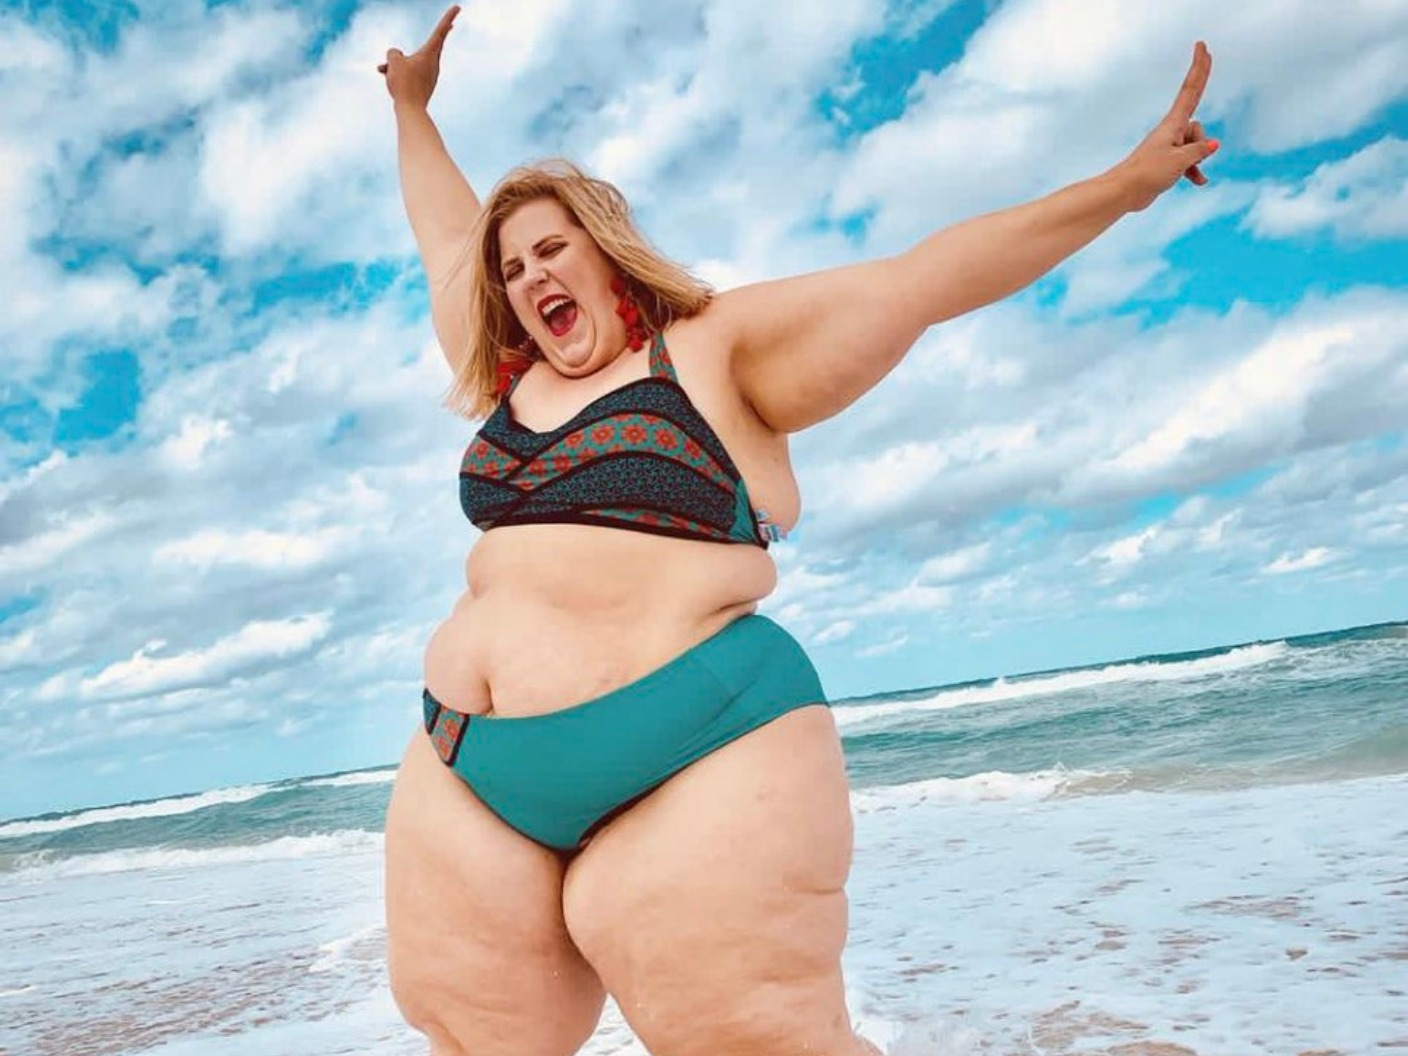 Gillettes New Venus Advert Sparks Fat Phobia Debate With -5967